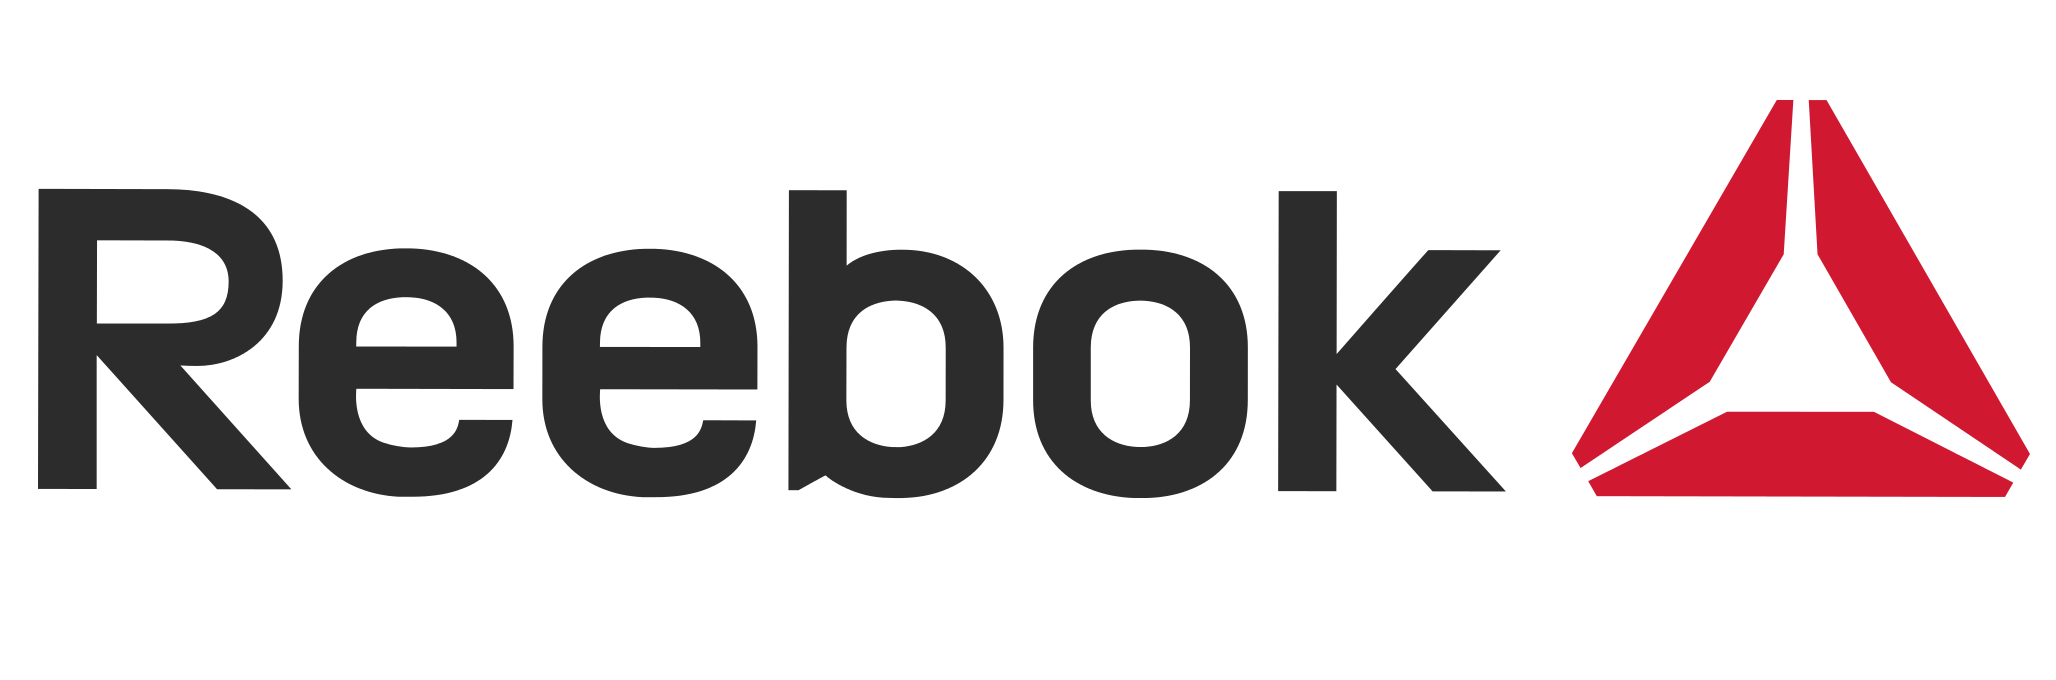 reebok-logo-png-due-to-the-latest-modification-which-took-place-in-2013-the-reebok-logo-became-absolutely-minimalistic-it-has-attracted-a-lot-of-criticism-as-being-too-2056.png